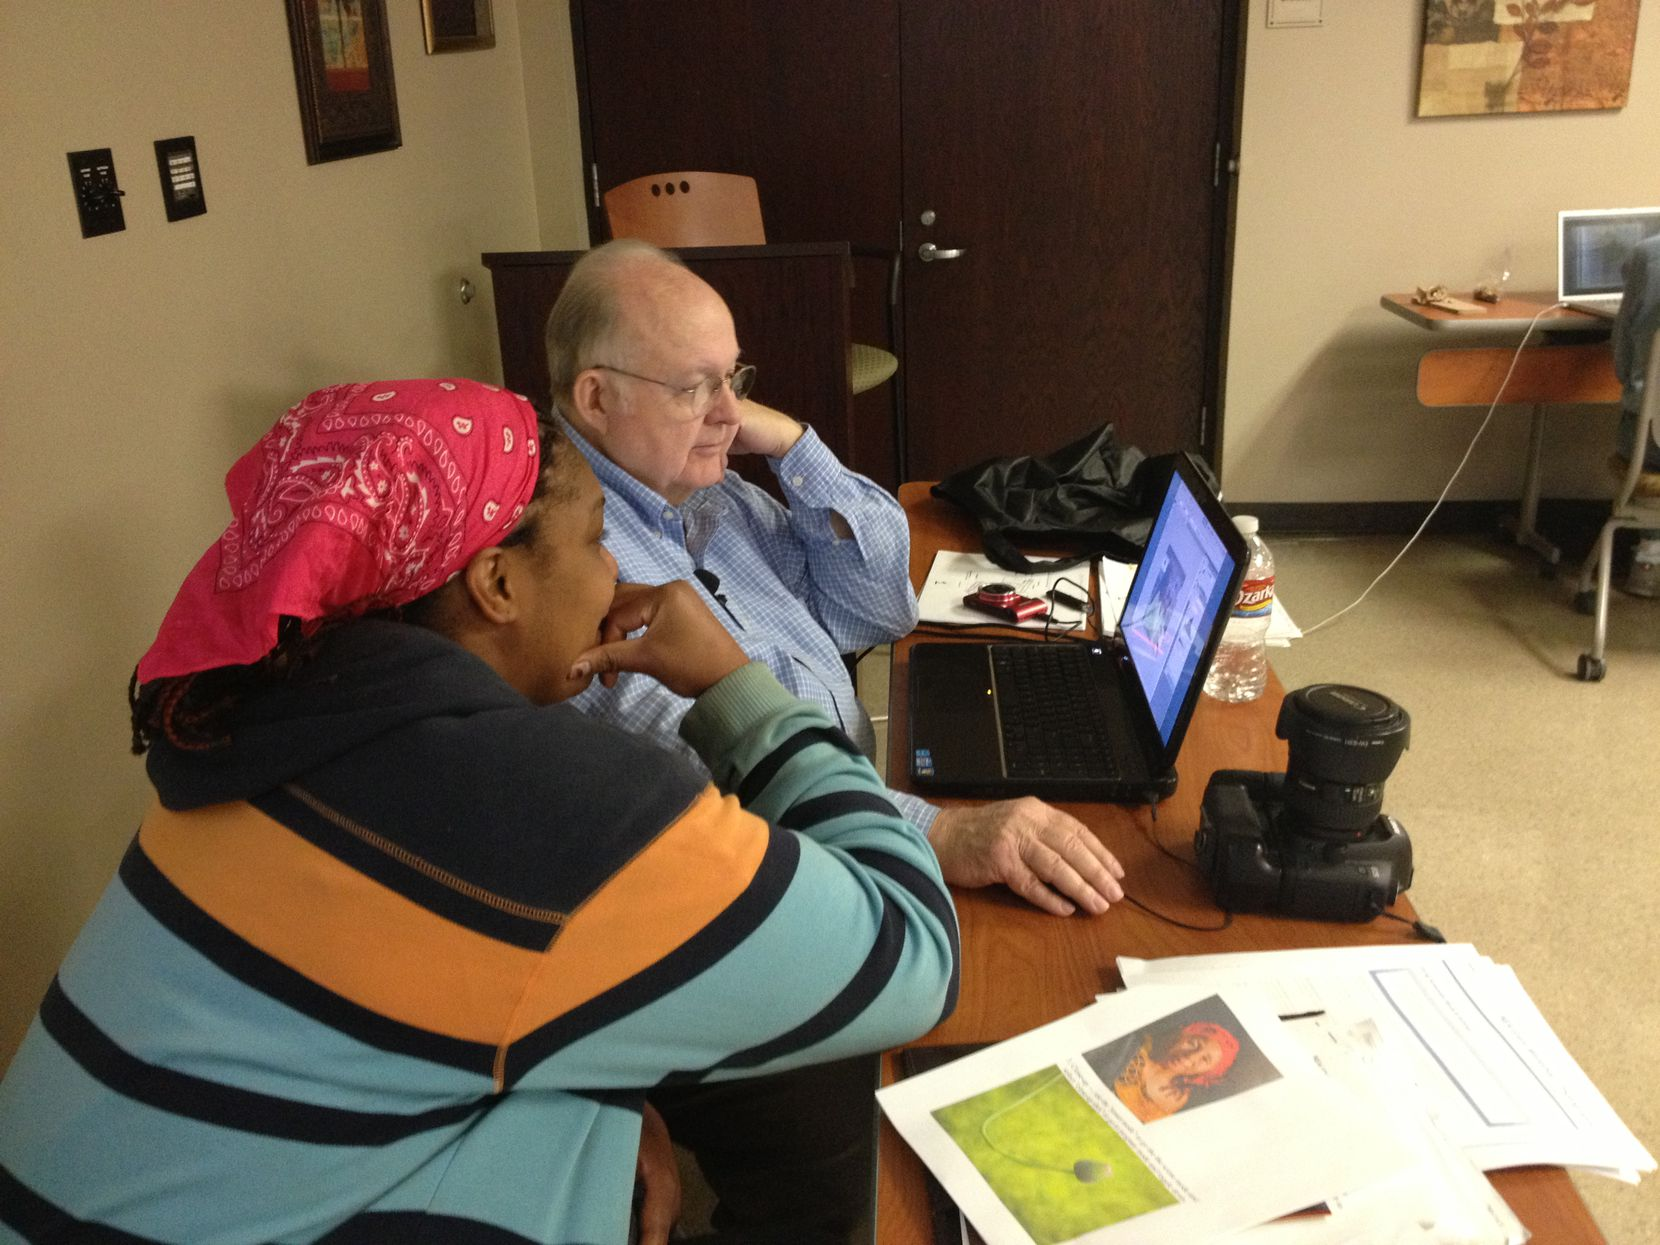 Gary Kelly teaches photo editing tips to Korton Bibs as part of a program to introduce ex-offenders to art projects.